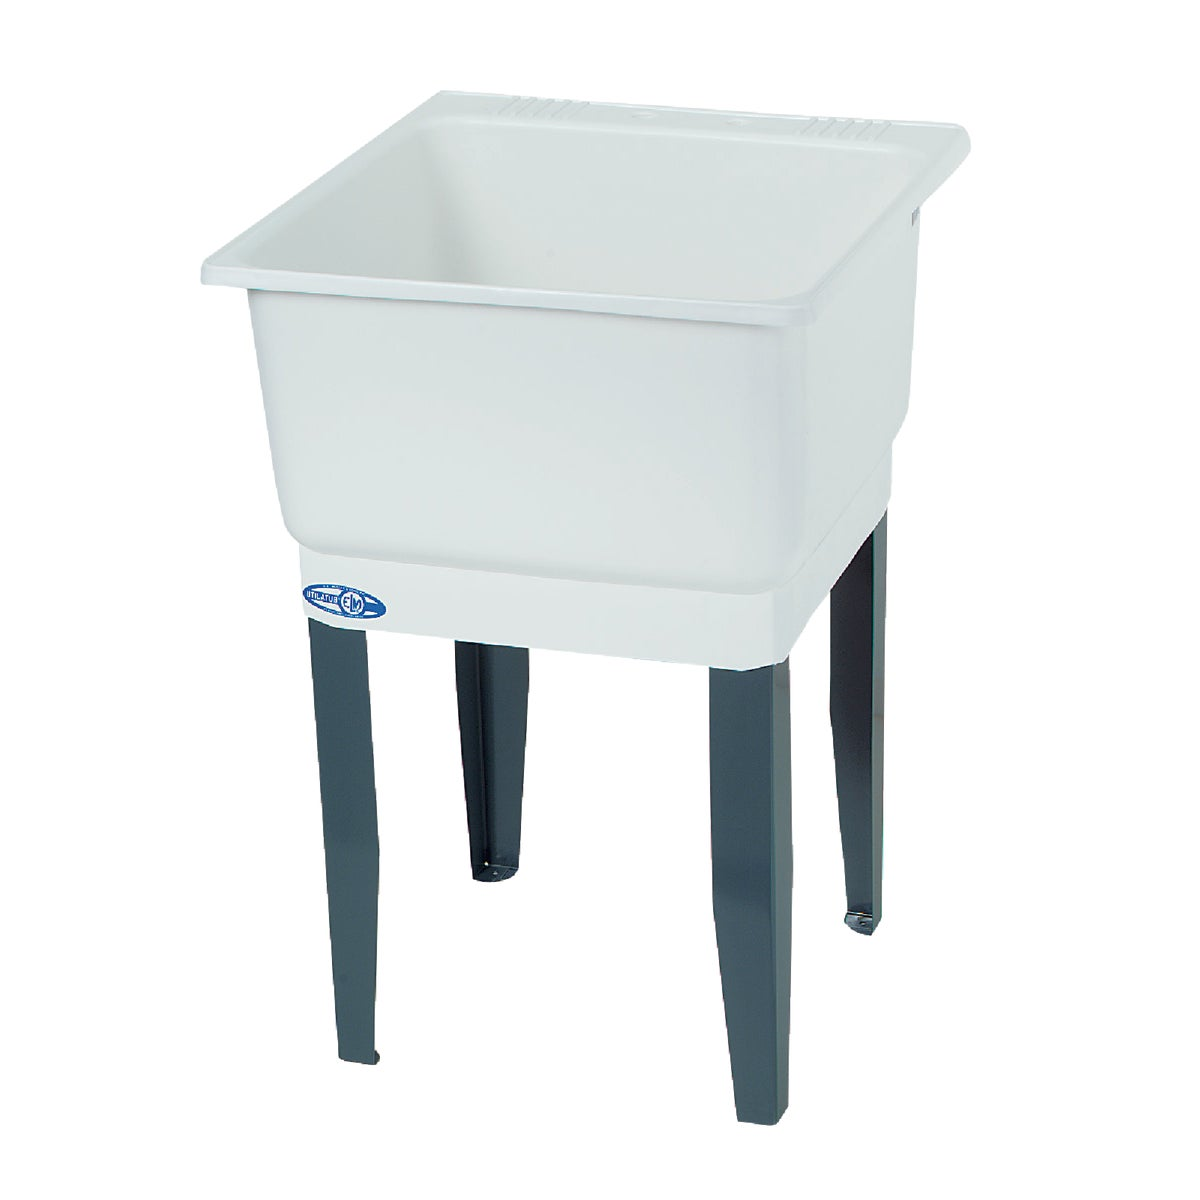 Mustee, E. L. POLY LAUNDRY TUB 14